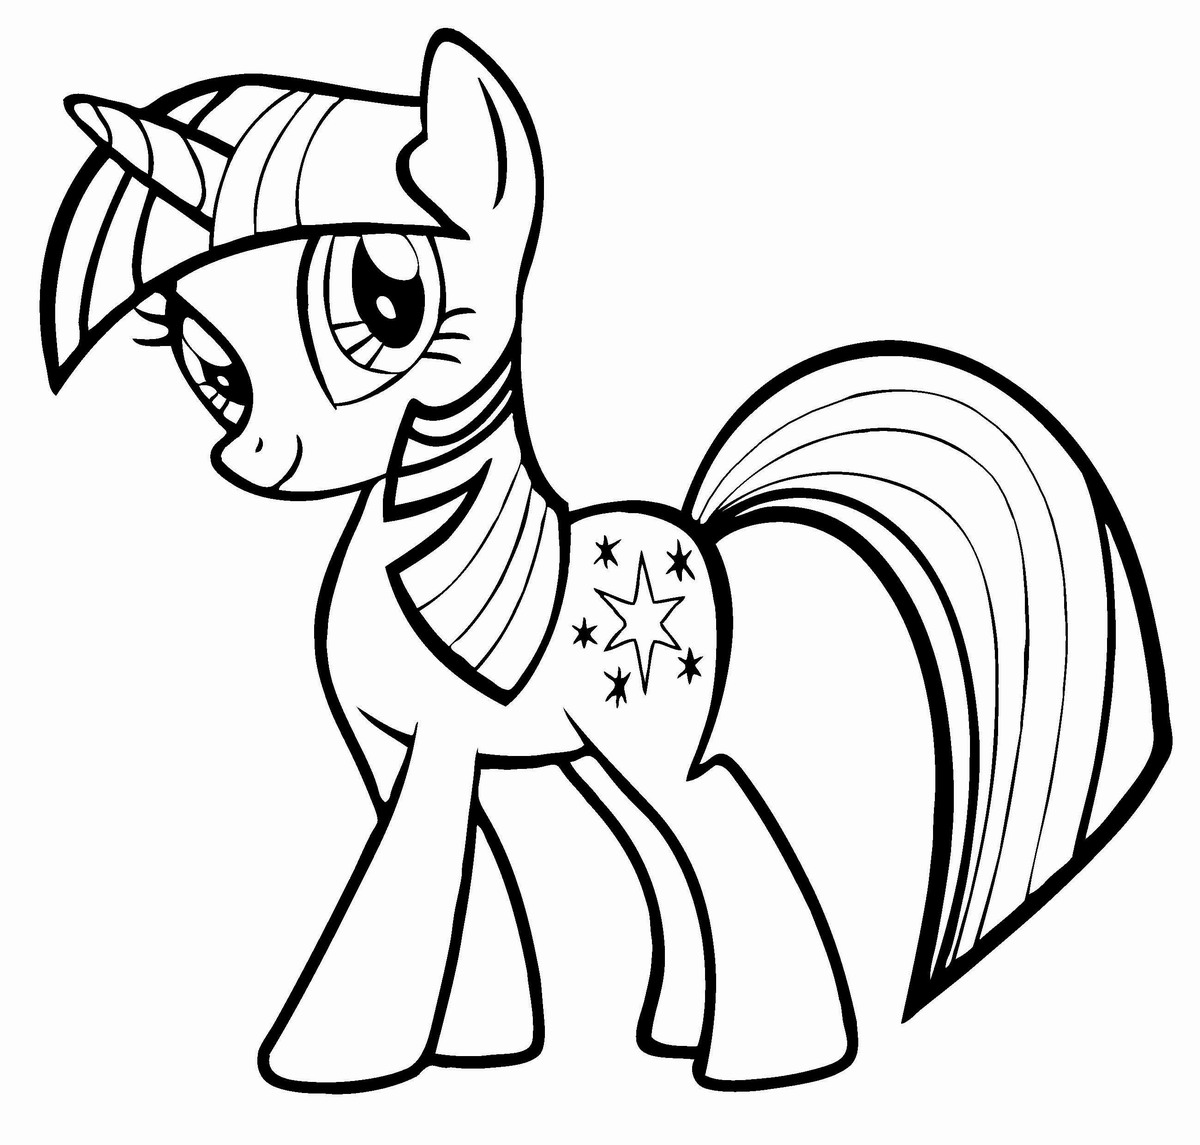 my little pony colouring pages to print free printable my little pony coloring pages for kids to pony colouring little pages print my